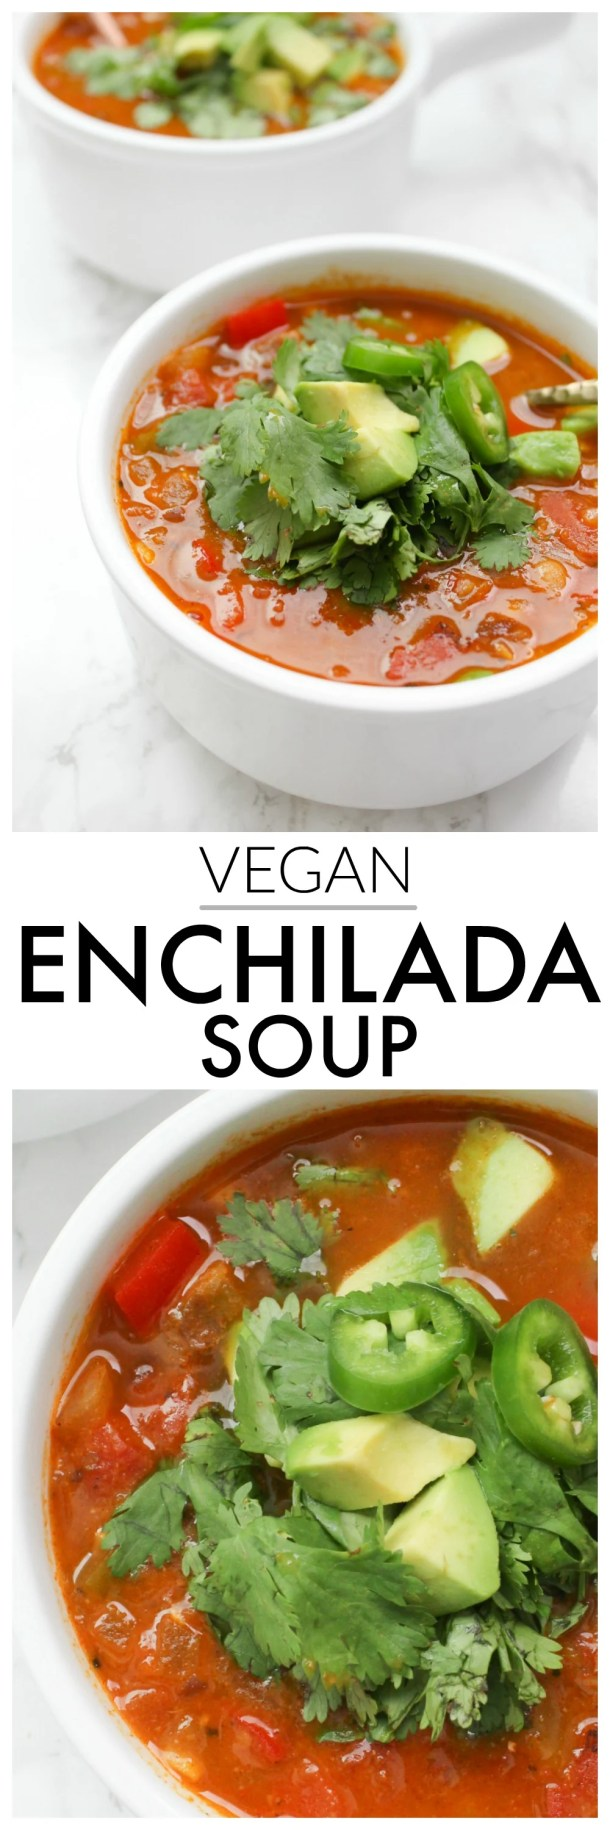 ThisVegan Enchilada Soup is loaded with fresh veggies and two types of beans - ready in 30 minutes and packed with tons of flavor! | ThisSavoryVegan.com #thissavoryvegan #vegansoup #vegan